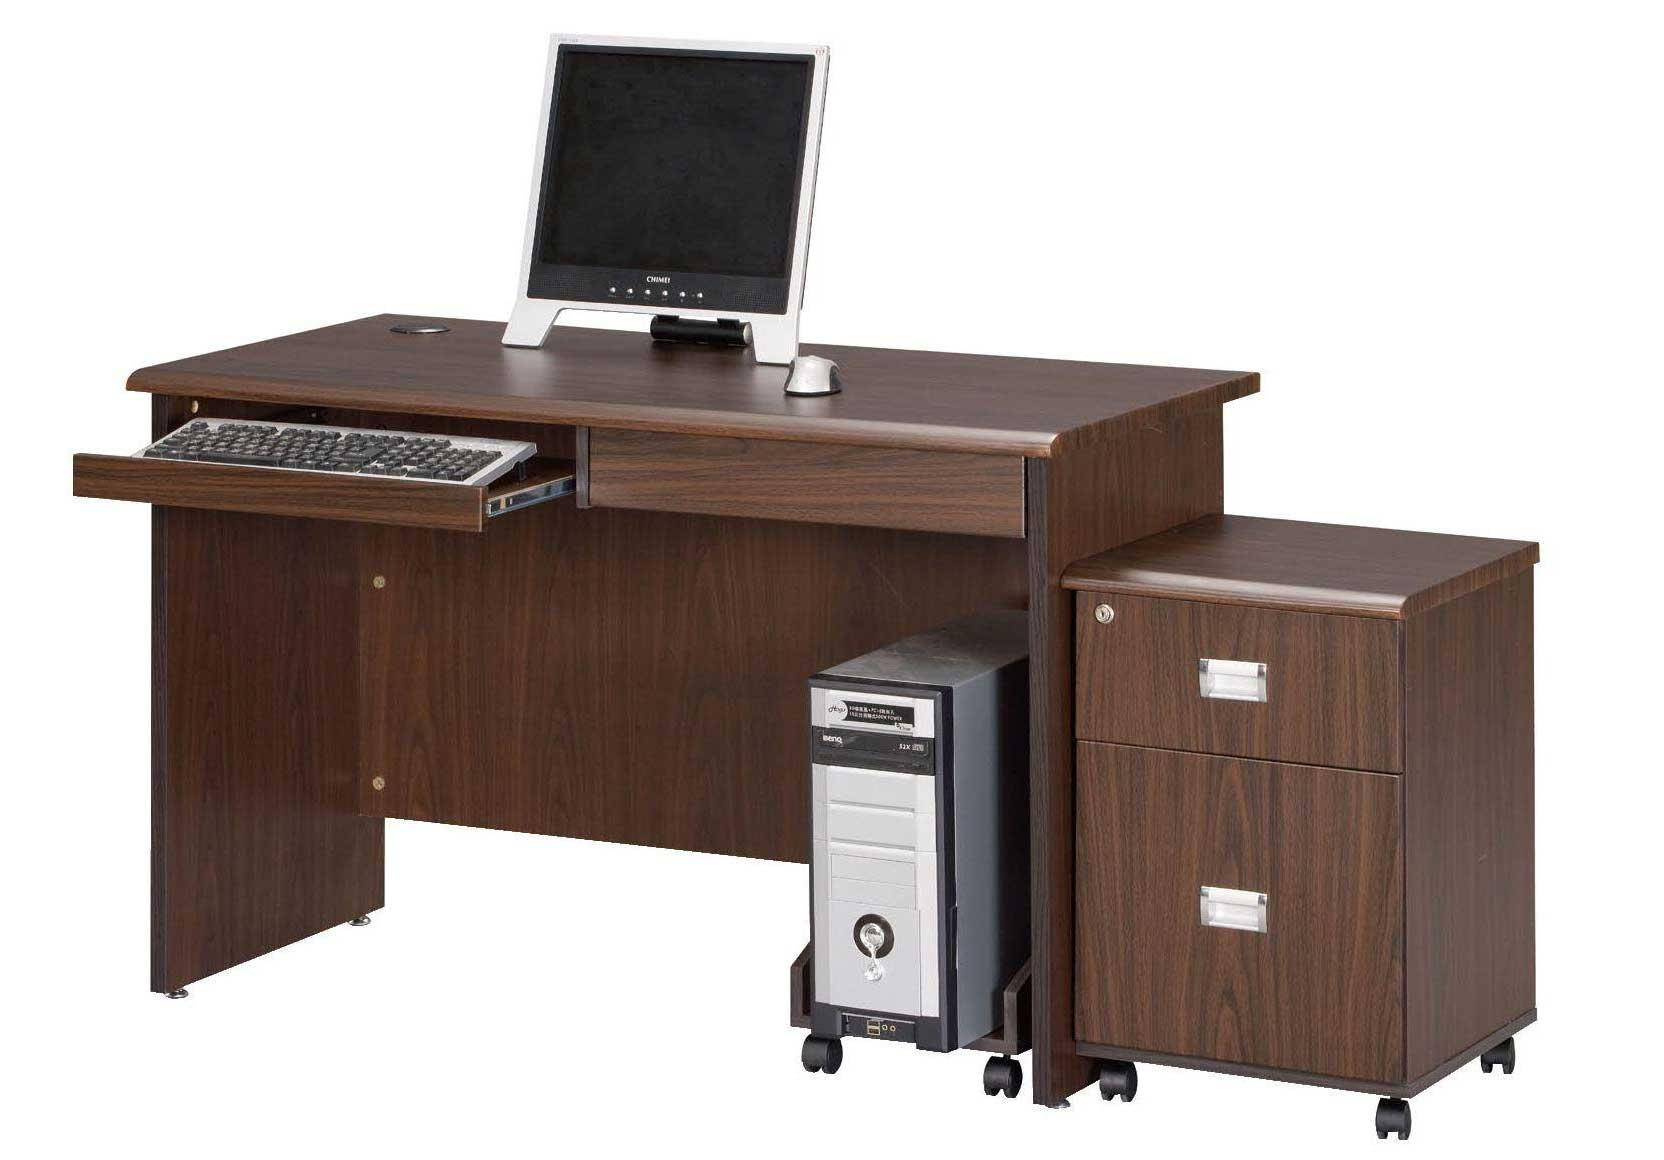 Solid Wood Mobile Computer Rack and Cabinets